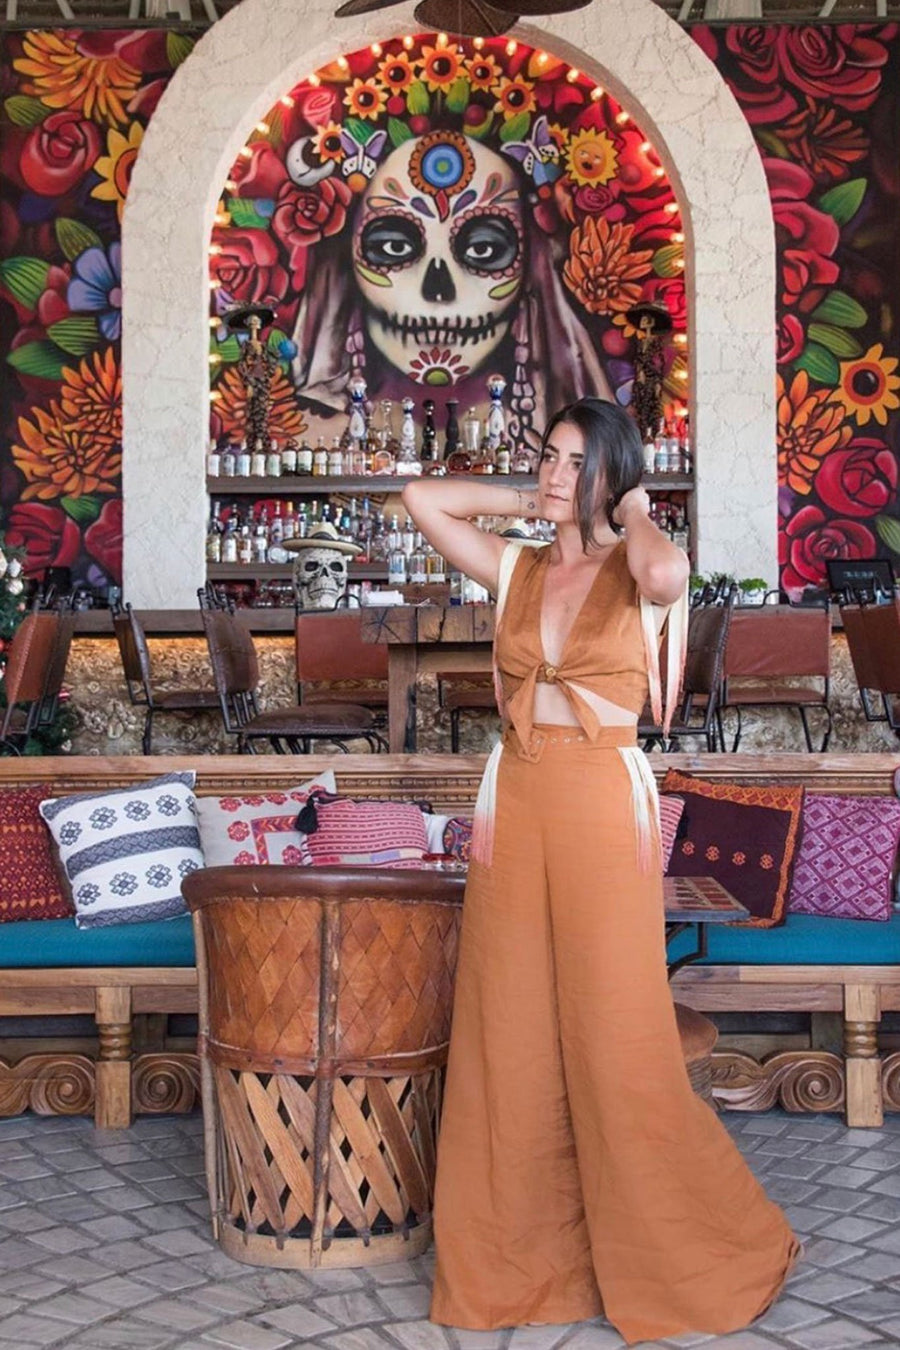 This is a photo of a woman wearing a 2 piece rust-colored linen top and pants with ombre fringe. She is in front of an a wall mural with a skill on it and flowers painted around the skull head.